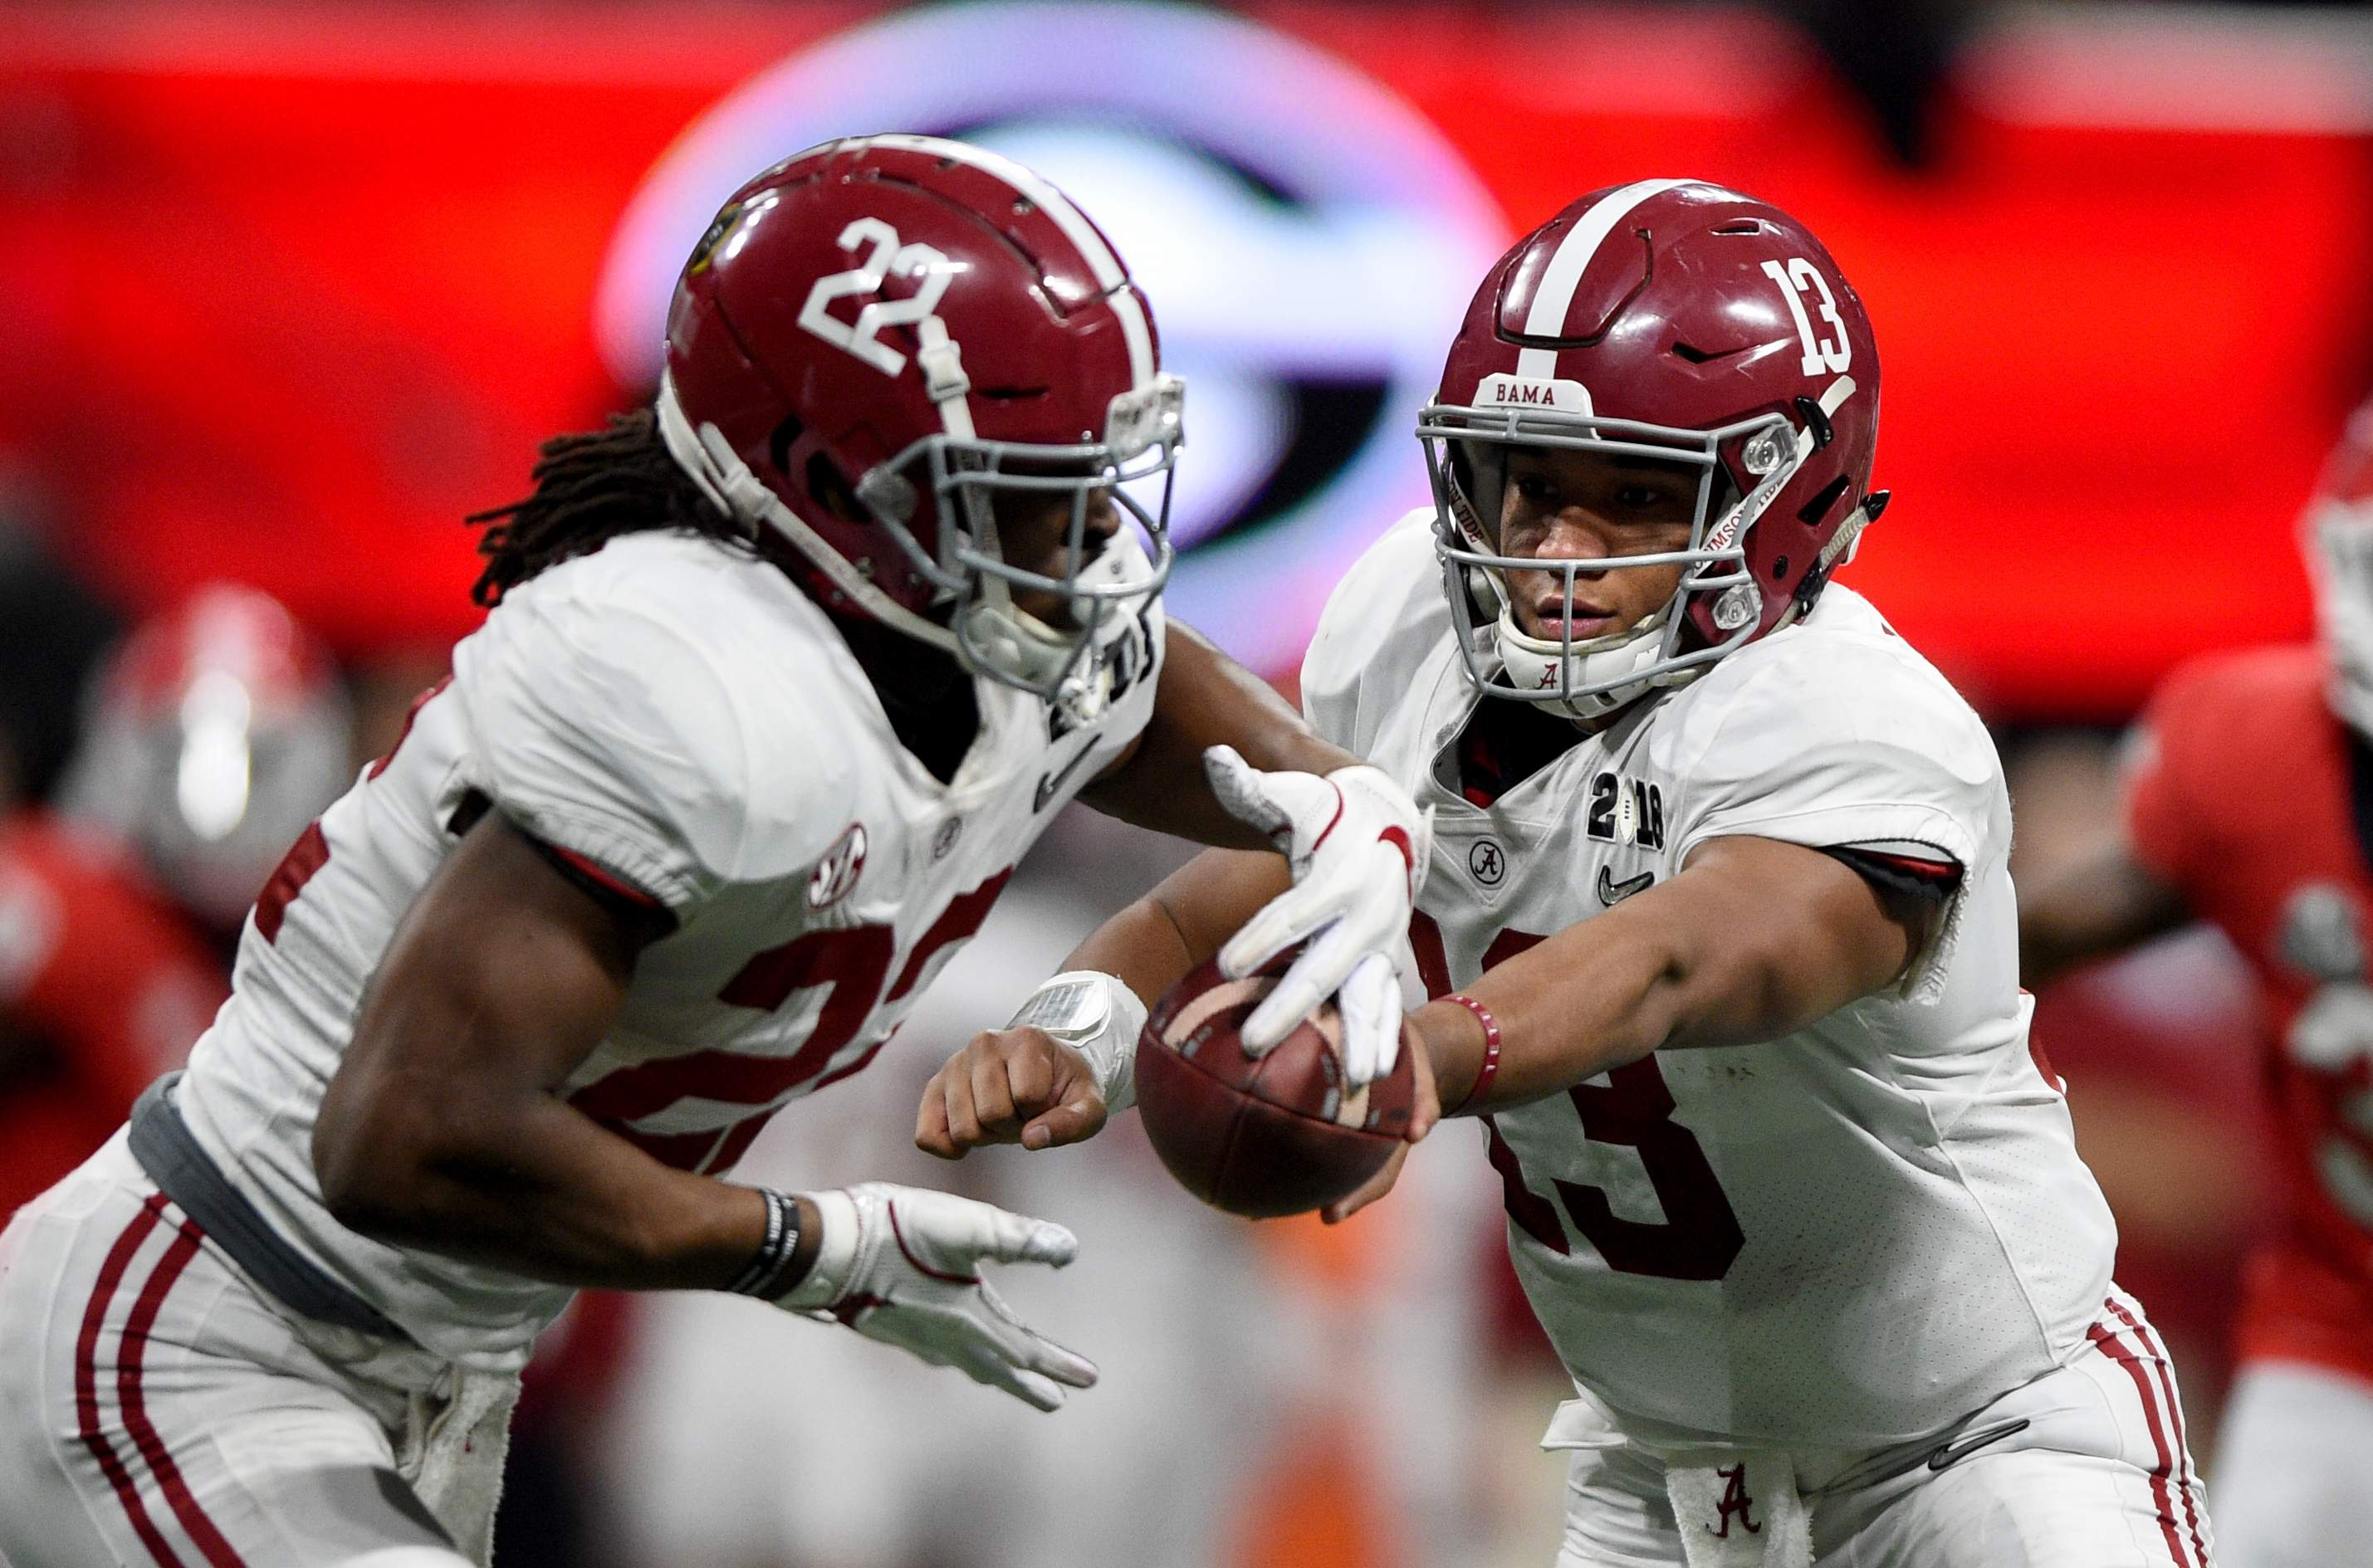 Alabama quarterback Tua Tagovailoa hands off to Najee Harris during the 2018 College Football Playoff National Championship at Mercedes-Benz Stadium in Atlanta, Ga., Monday evening January 8, 2018. MICHAEL HOLAHAN/AUGUSTA CHRONICLE